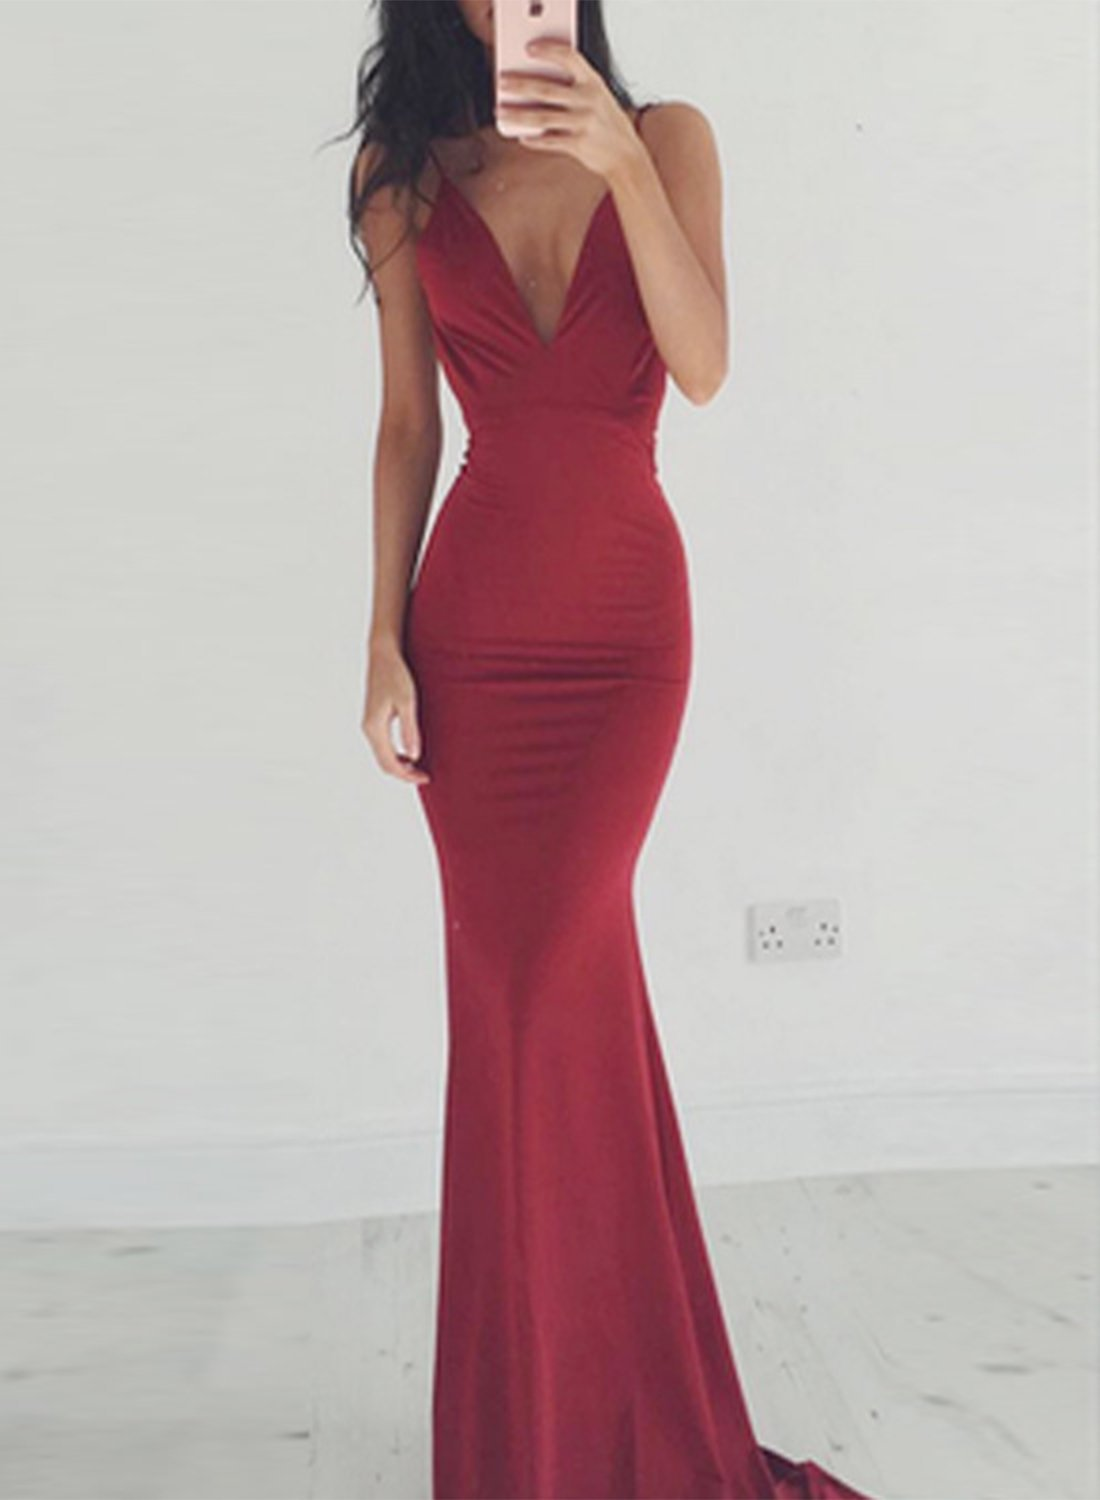 Women s elegant v neck sleeveless backless maxi prom dress women